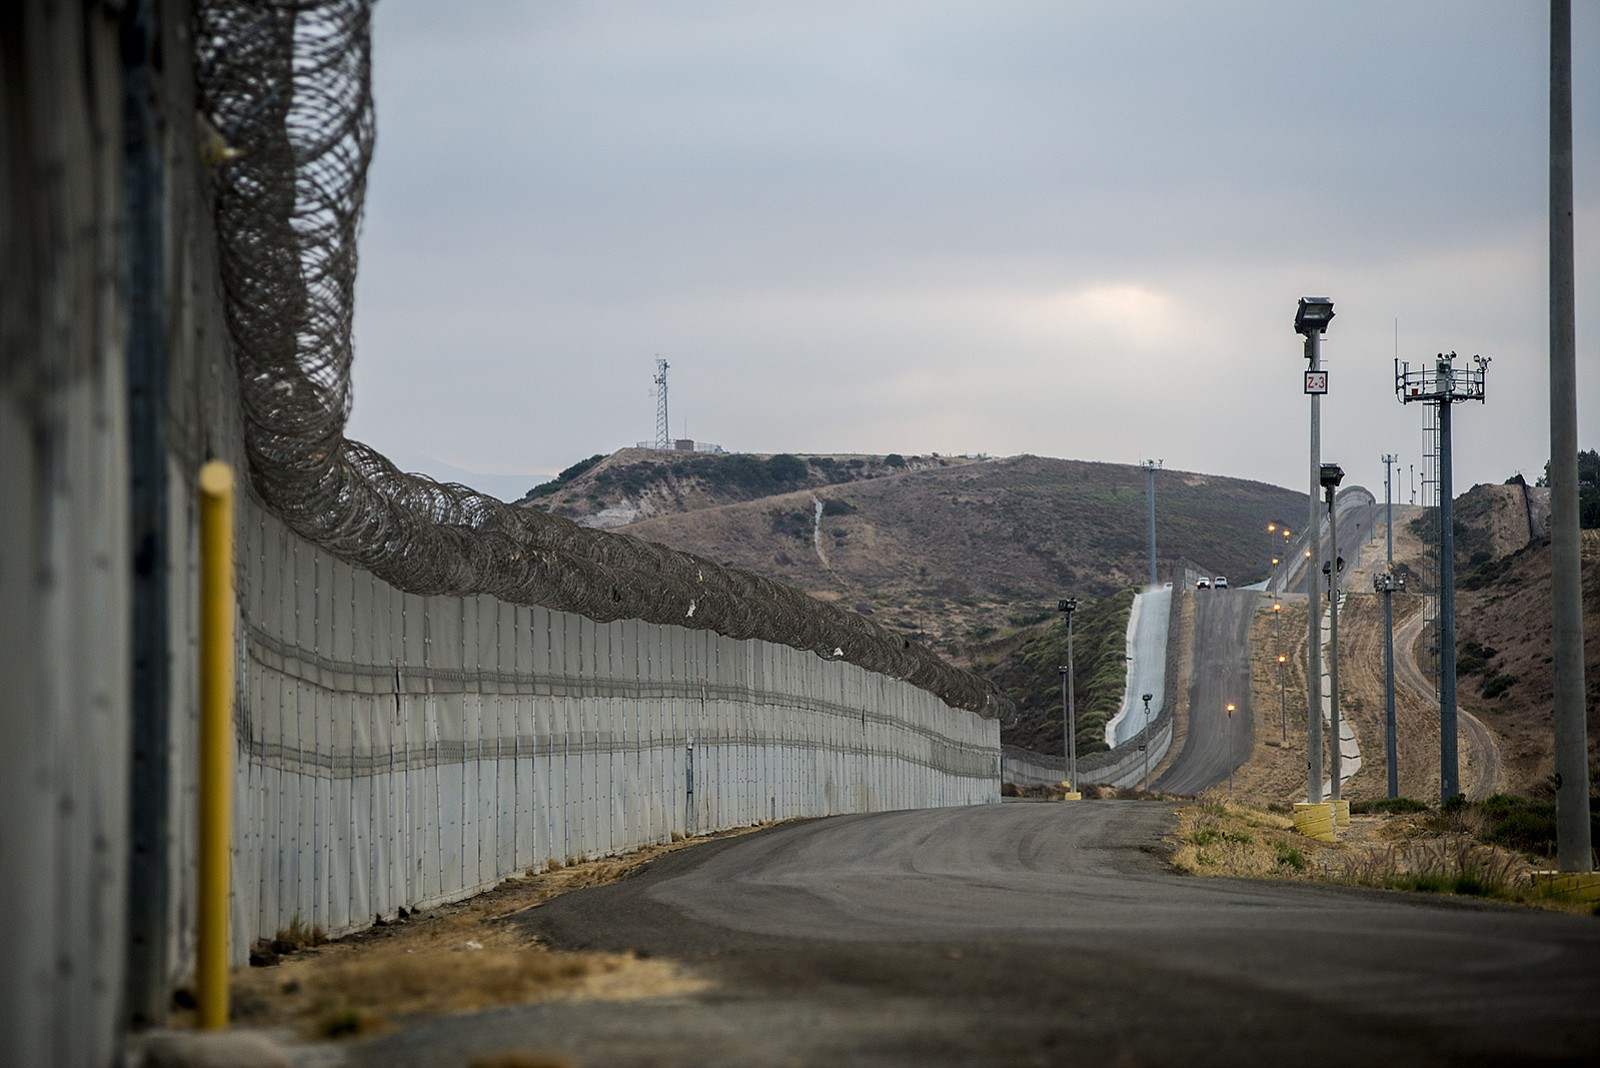 Stretches of secondary fencing are topped with spirals of concertina wire alo...